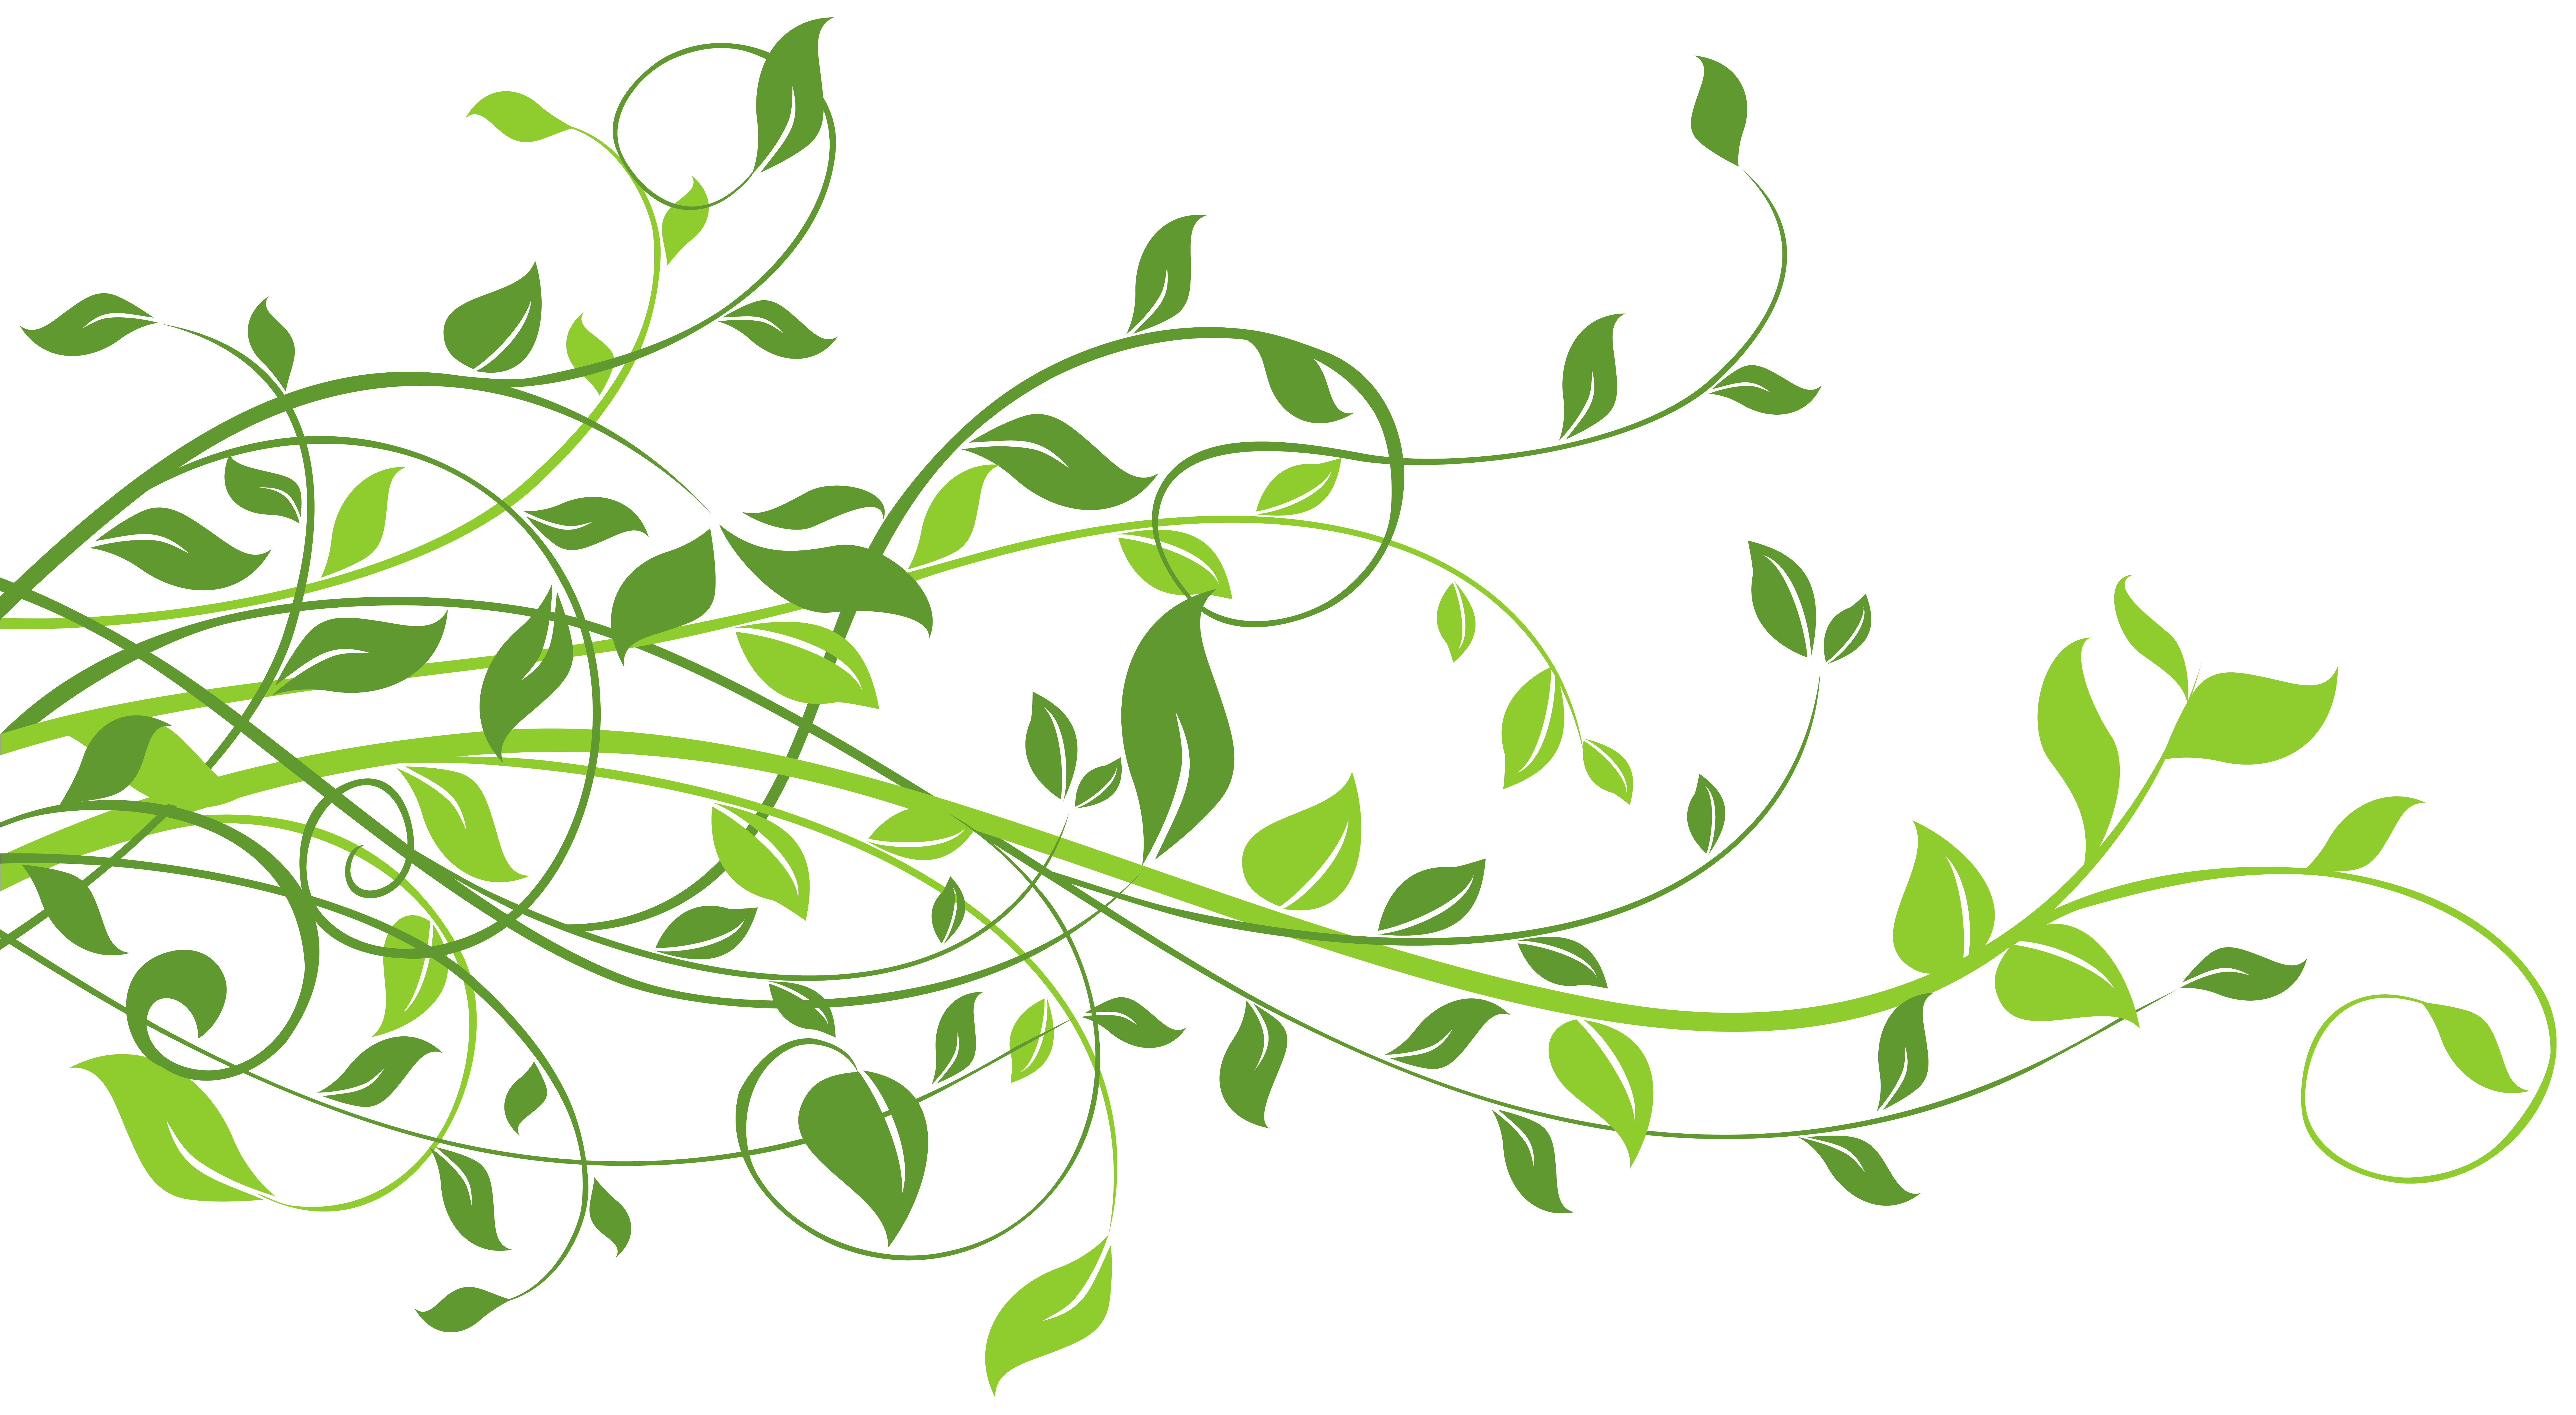 Green decorative clipart graphic transparent stock Free Spring Green Cliparts, Download Free Clip Art, Free Clip Art on ... graphic transparent stock